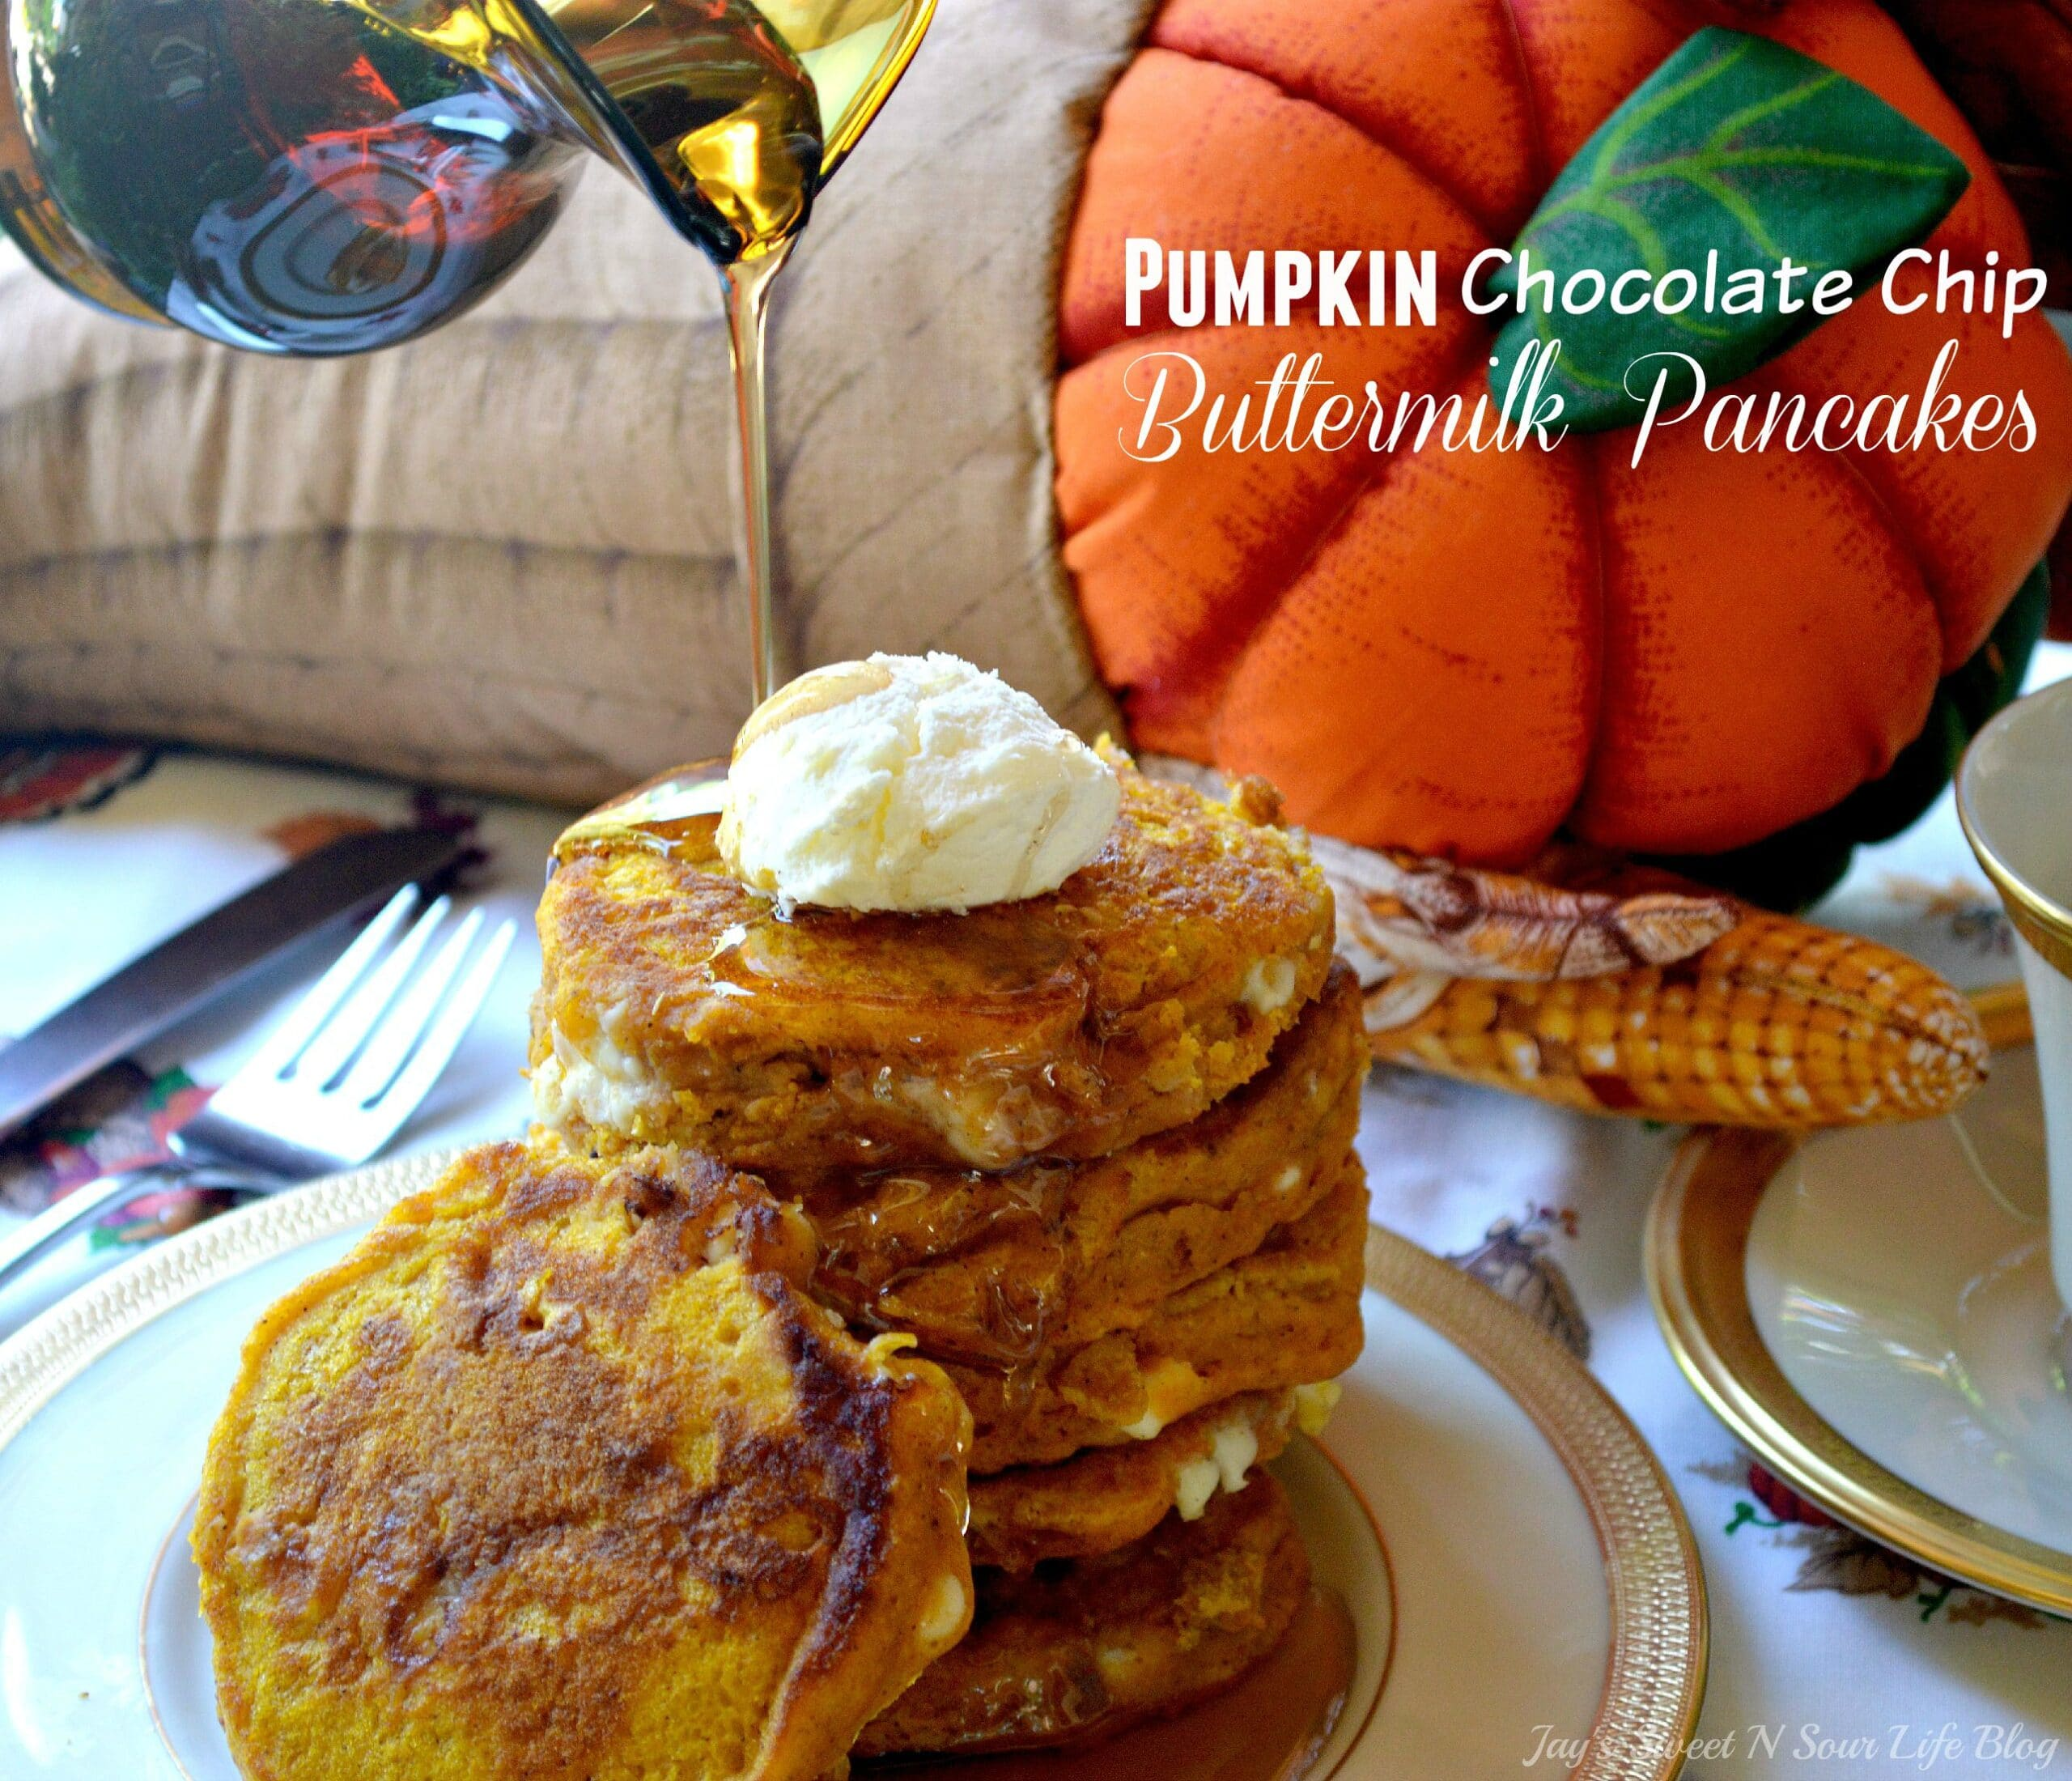 Pumpkin Chocolate Chip Buttermilk Pancakes